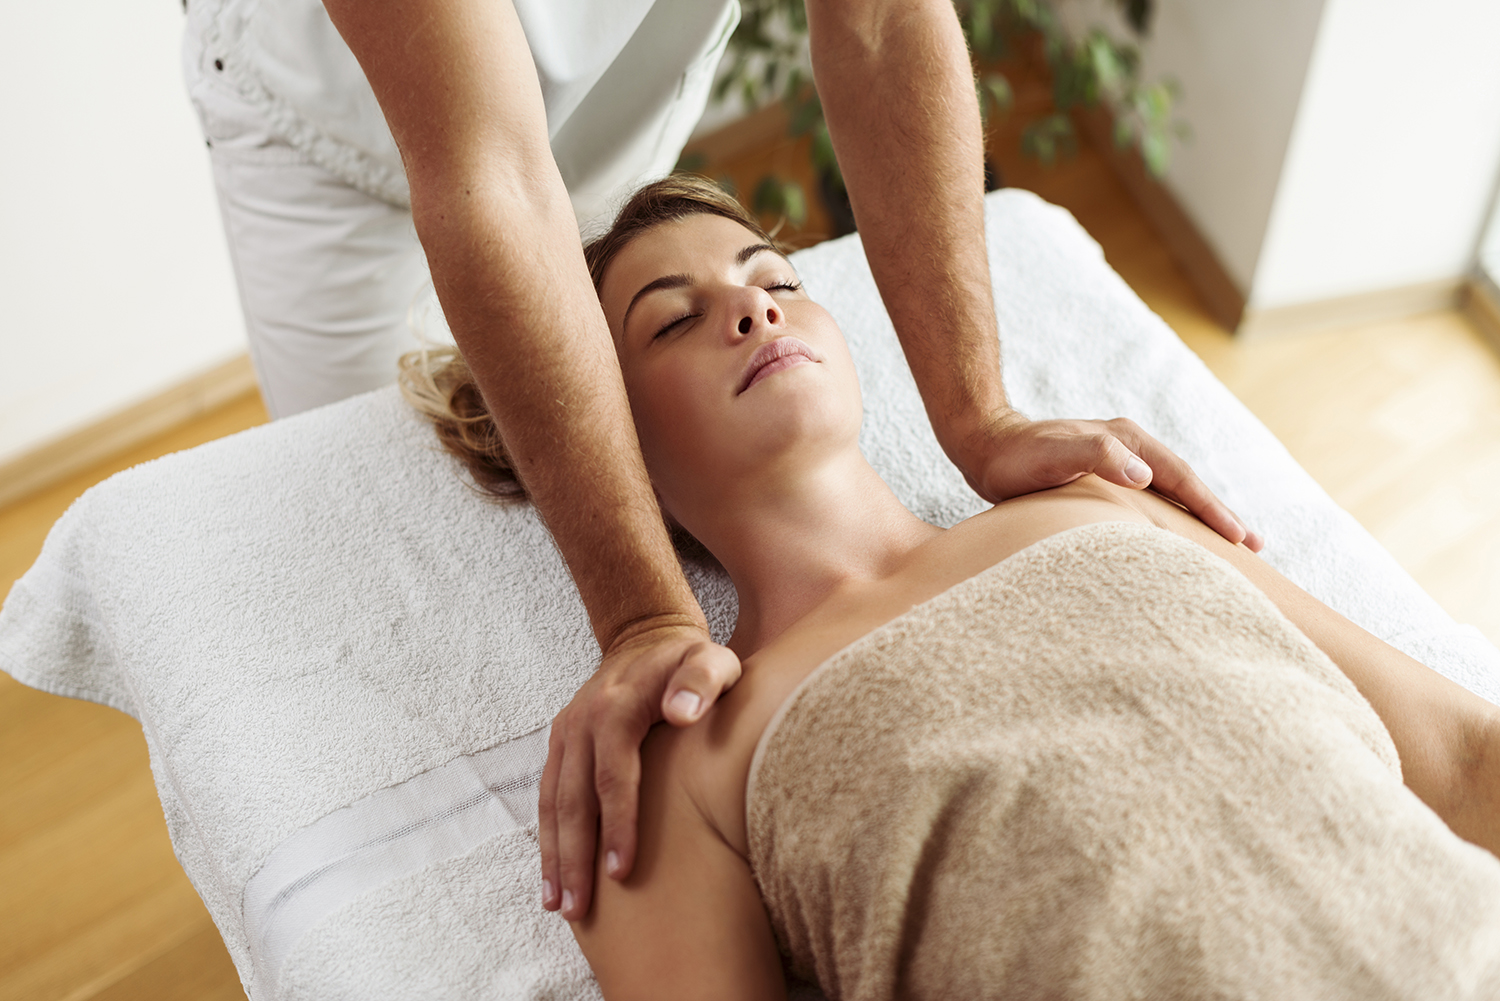 What is Rolfing Massage And Where Can I Find Massage Near Me?